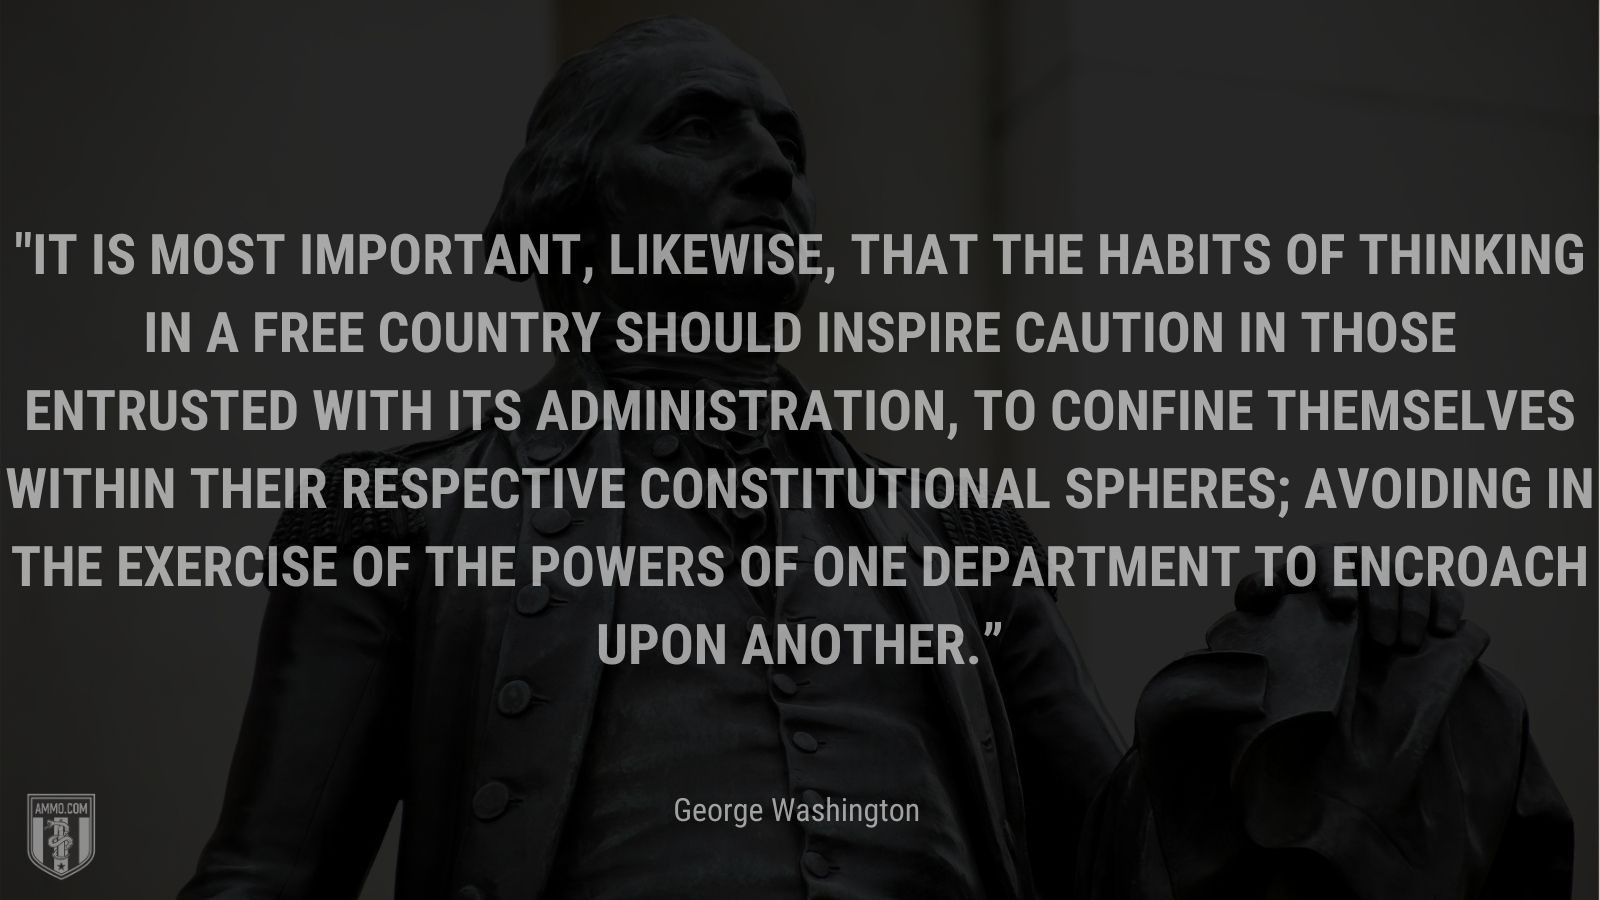 """""""It is most important, likewise, that the habits of thinking in a free Country should inspire caution in those entrusted with its administration, to confine themselves within their respective Constitutional Spheres; avoiding in the exercise of the Powers of one department to encroach upon another."""" - George Washington"""